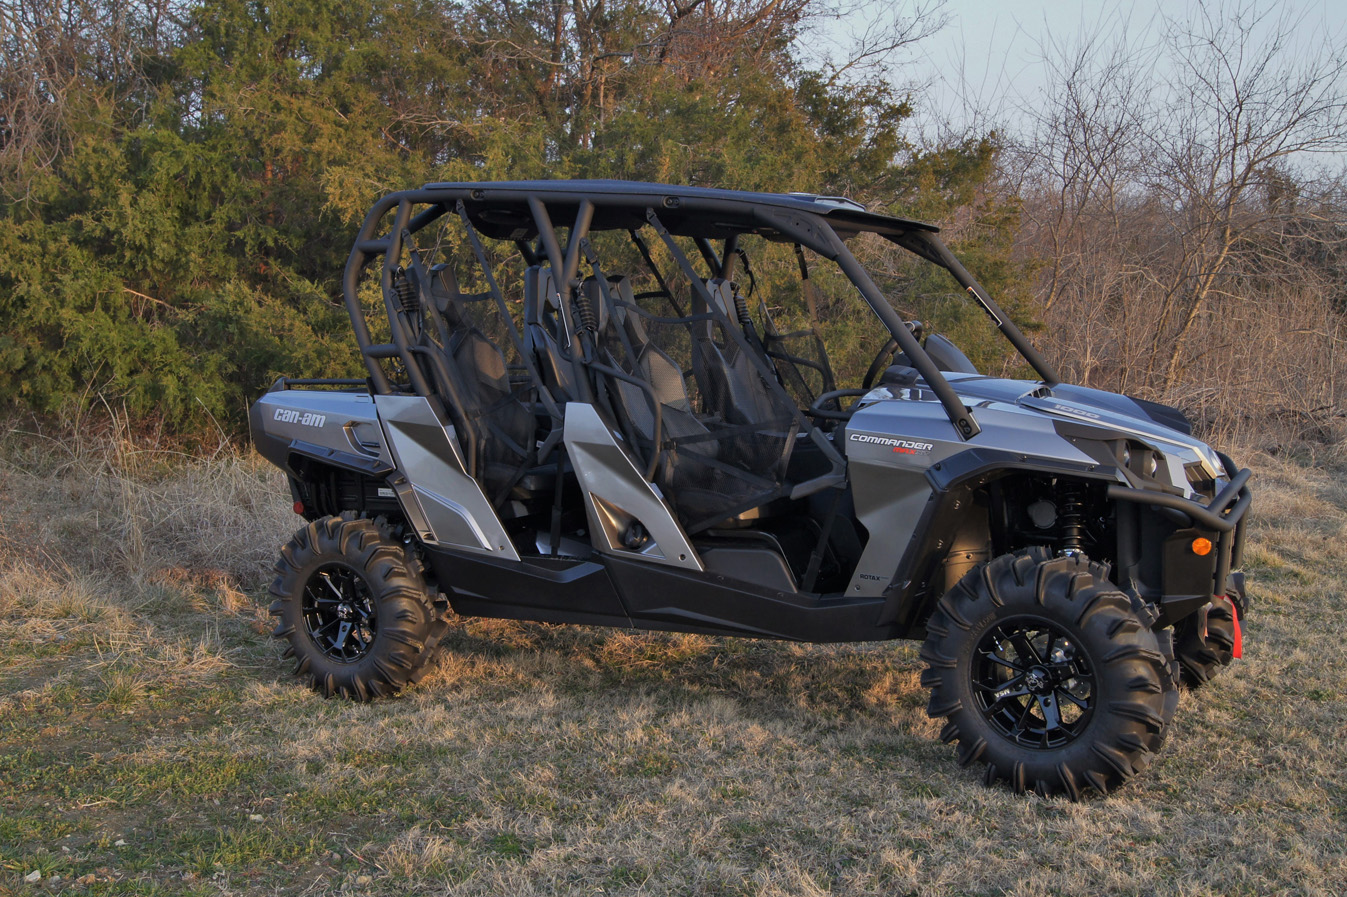 Can am commander max crtssmax and maverick max mrtssmax roof top stereo systems 2013 current